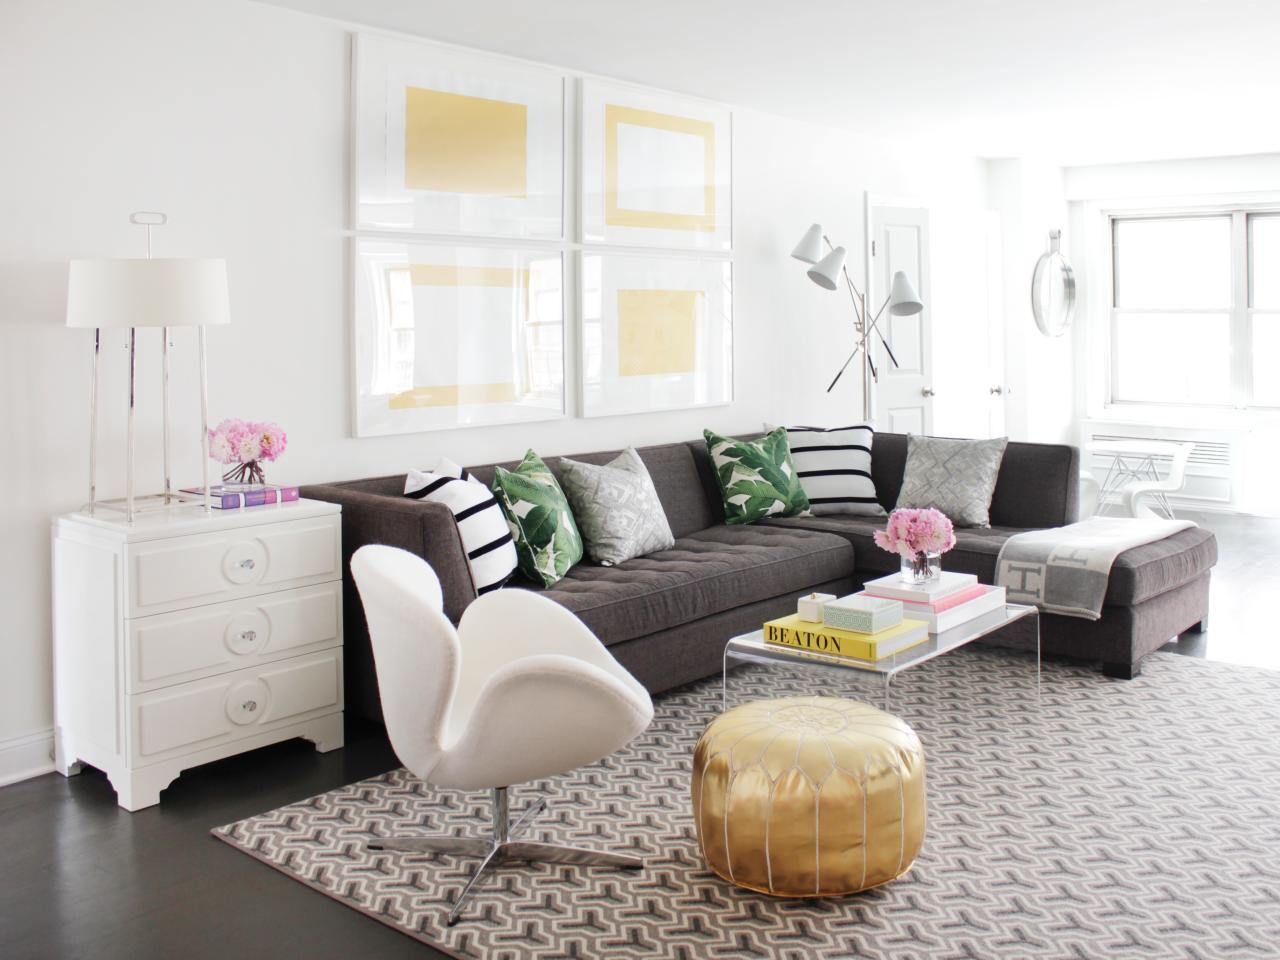 living room sectional ideas single chairs 12 for a grey hgtv s decorating design blog